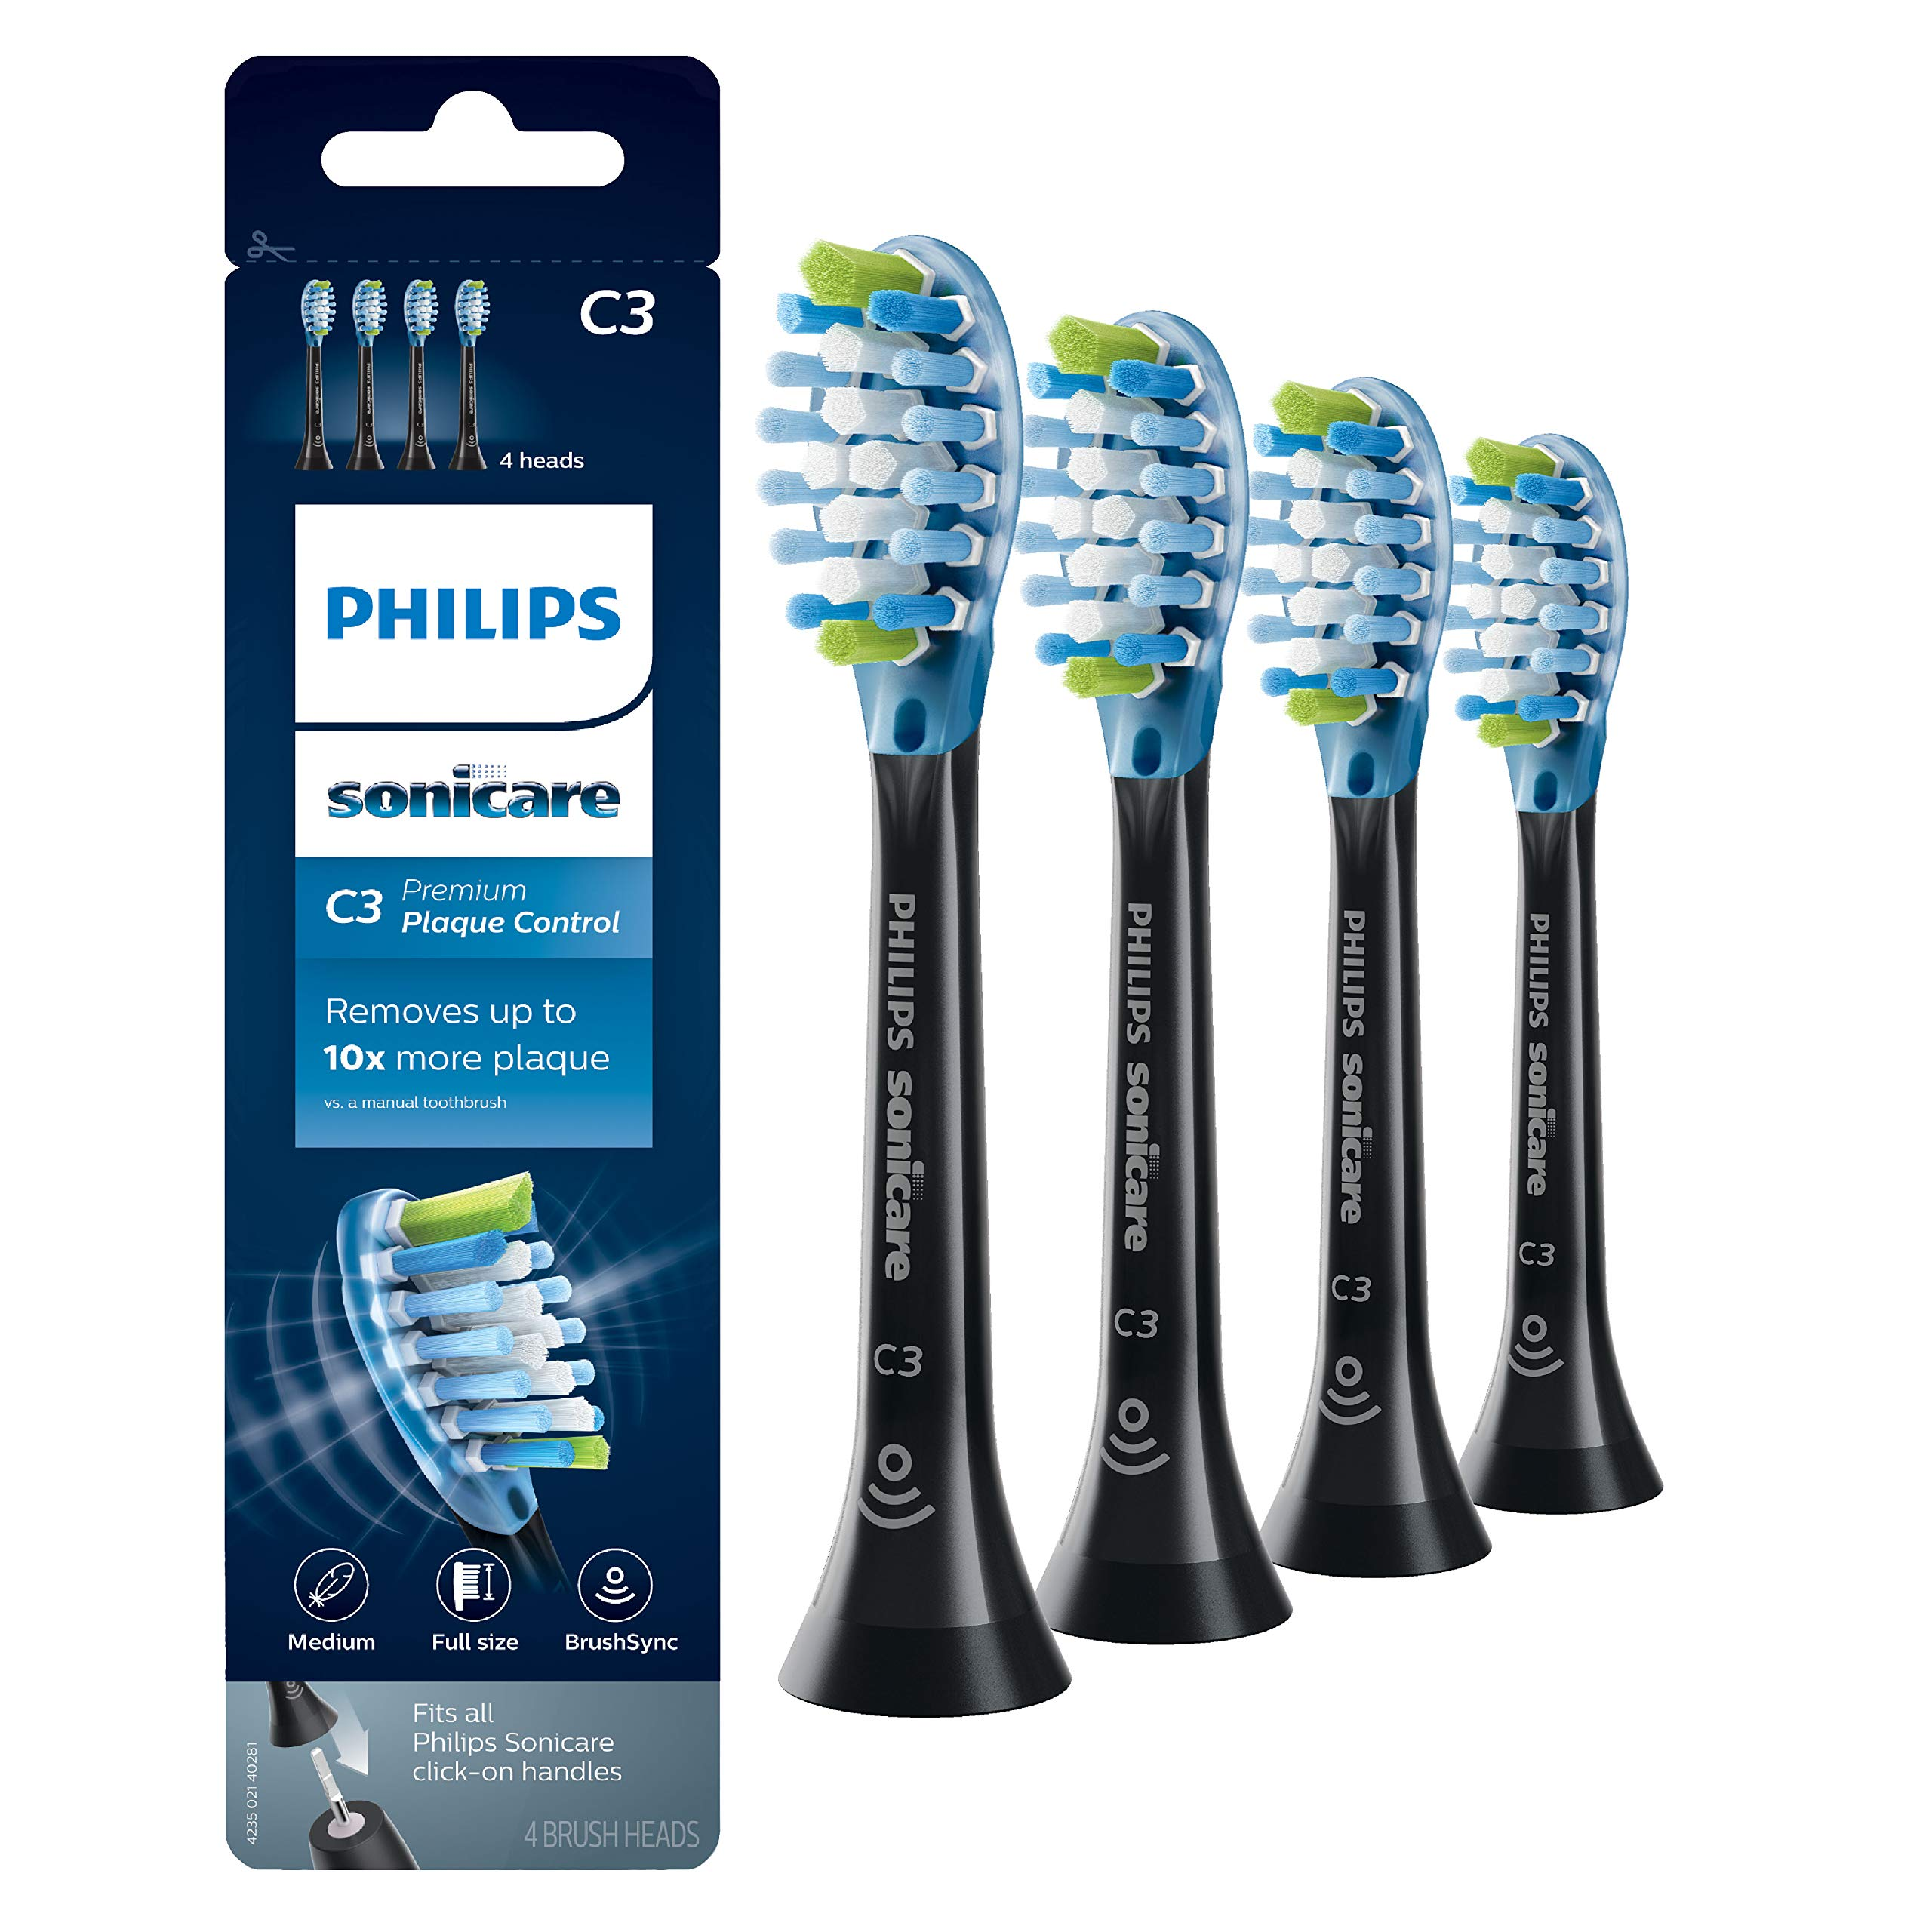 Philips Sonicare Premium Plaque Control replacement toothbrush heads, HX9044/95, BrushSync technology,